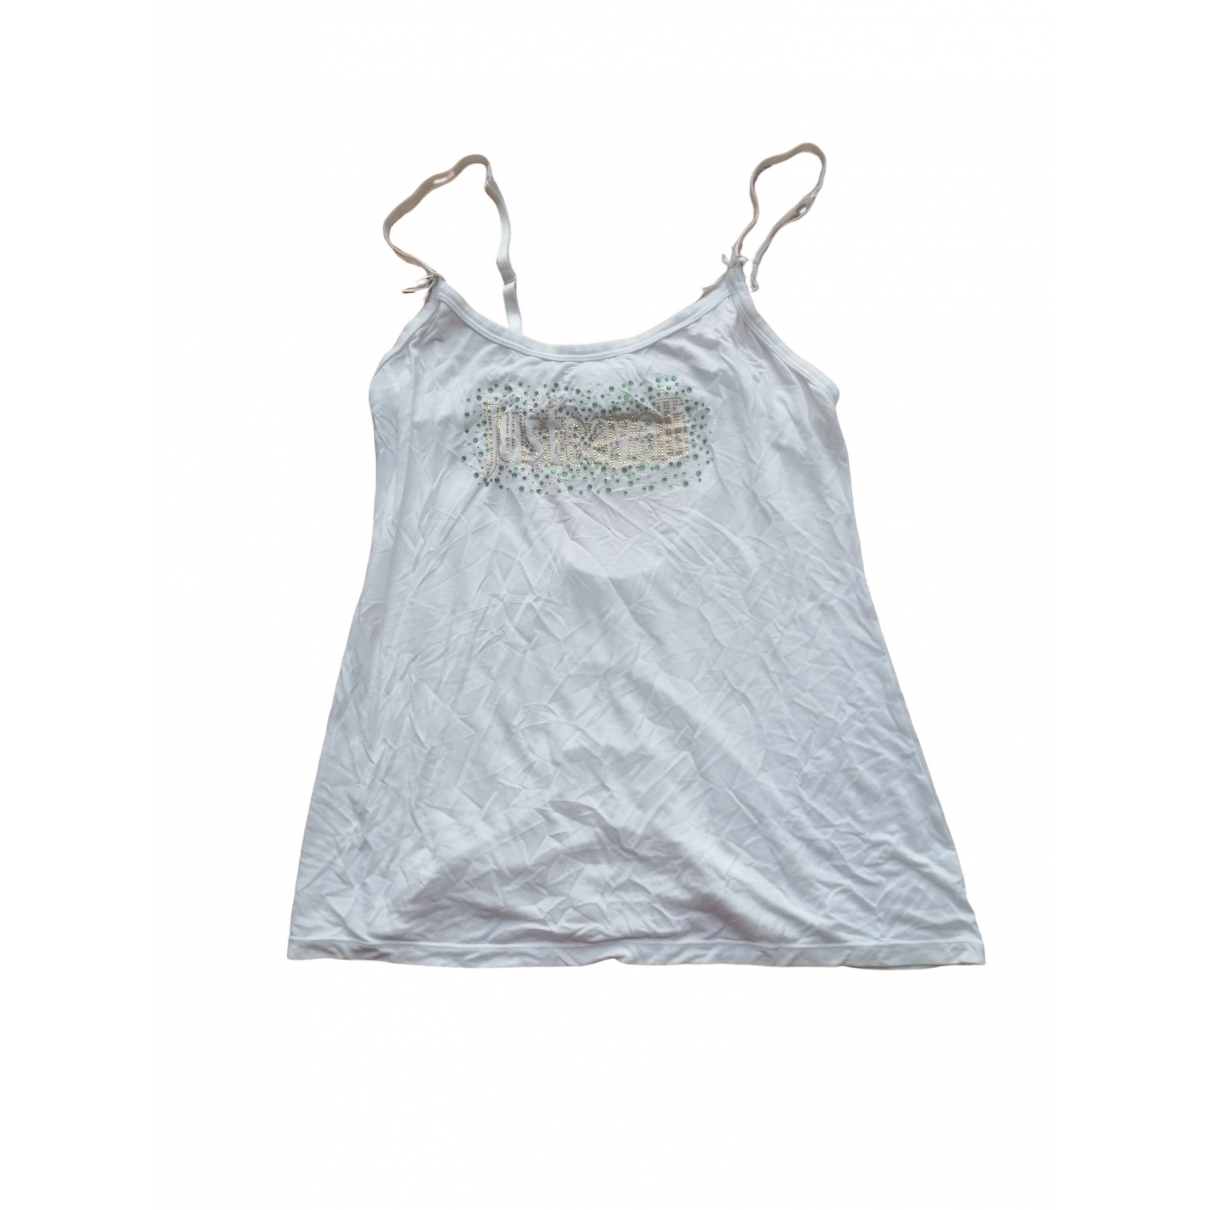 Just Cavalli \N White Cotton  top for Women 40 IT